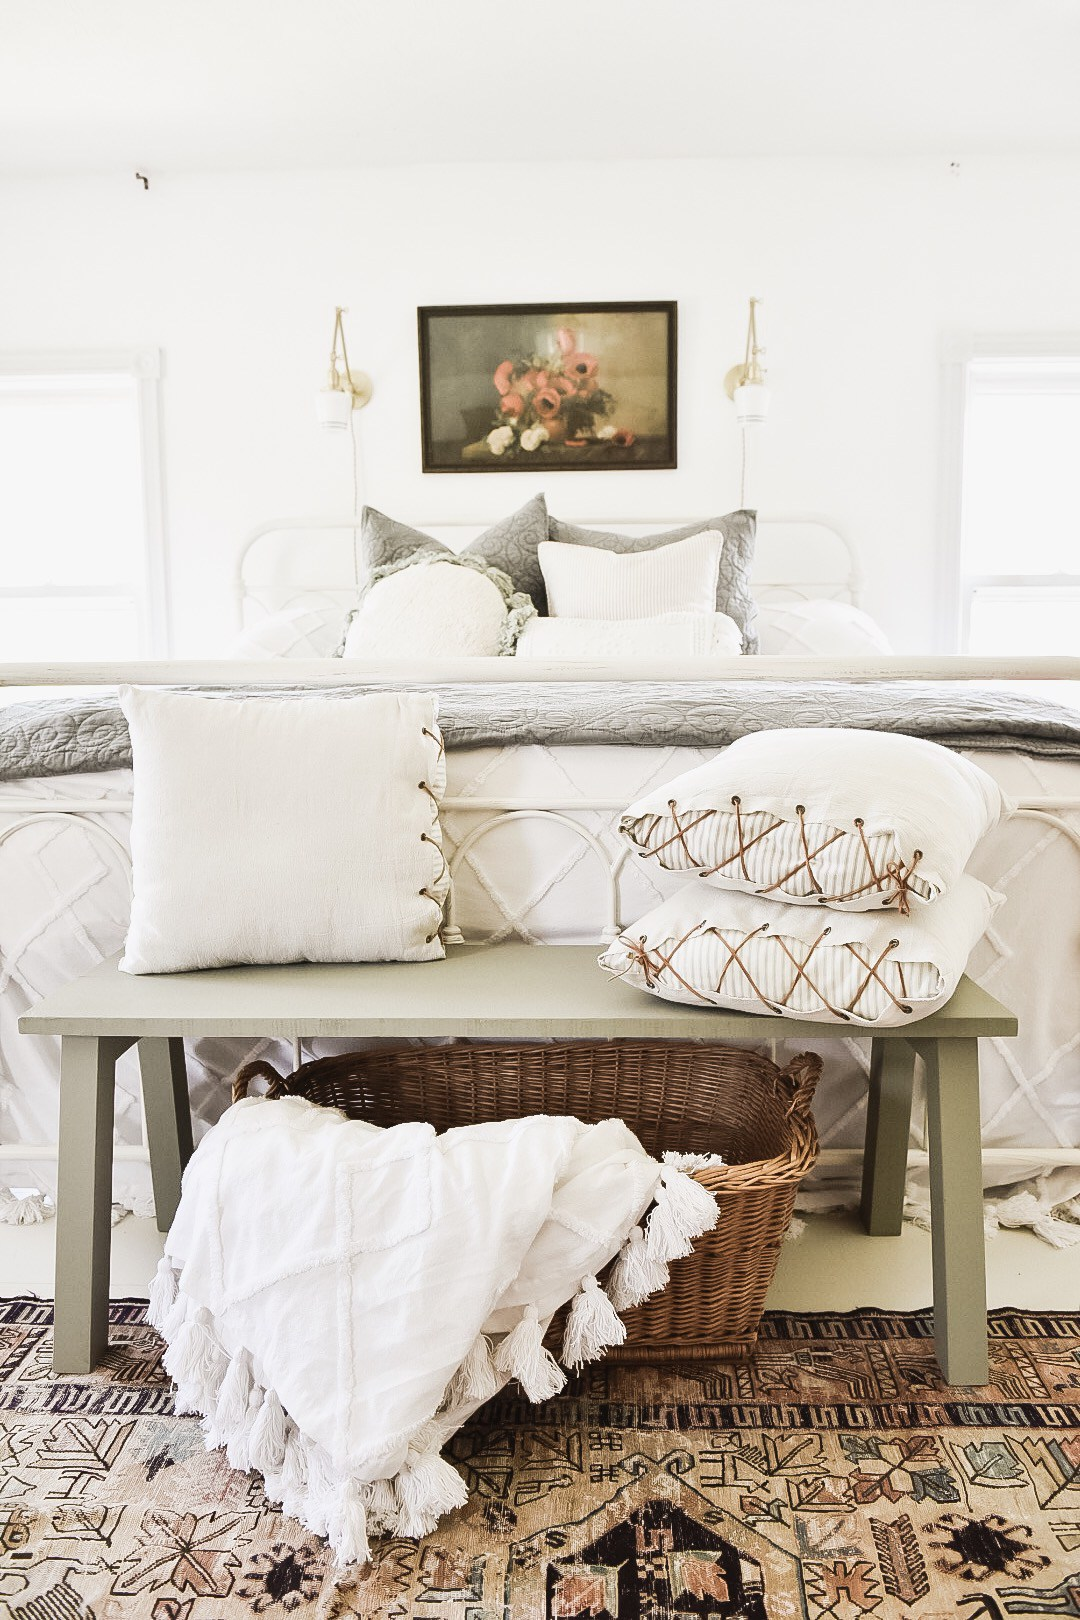 These unique throw pillows and patterned rug add to the white tones in this farmhouse bedroom.